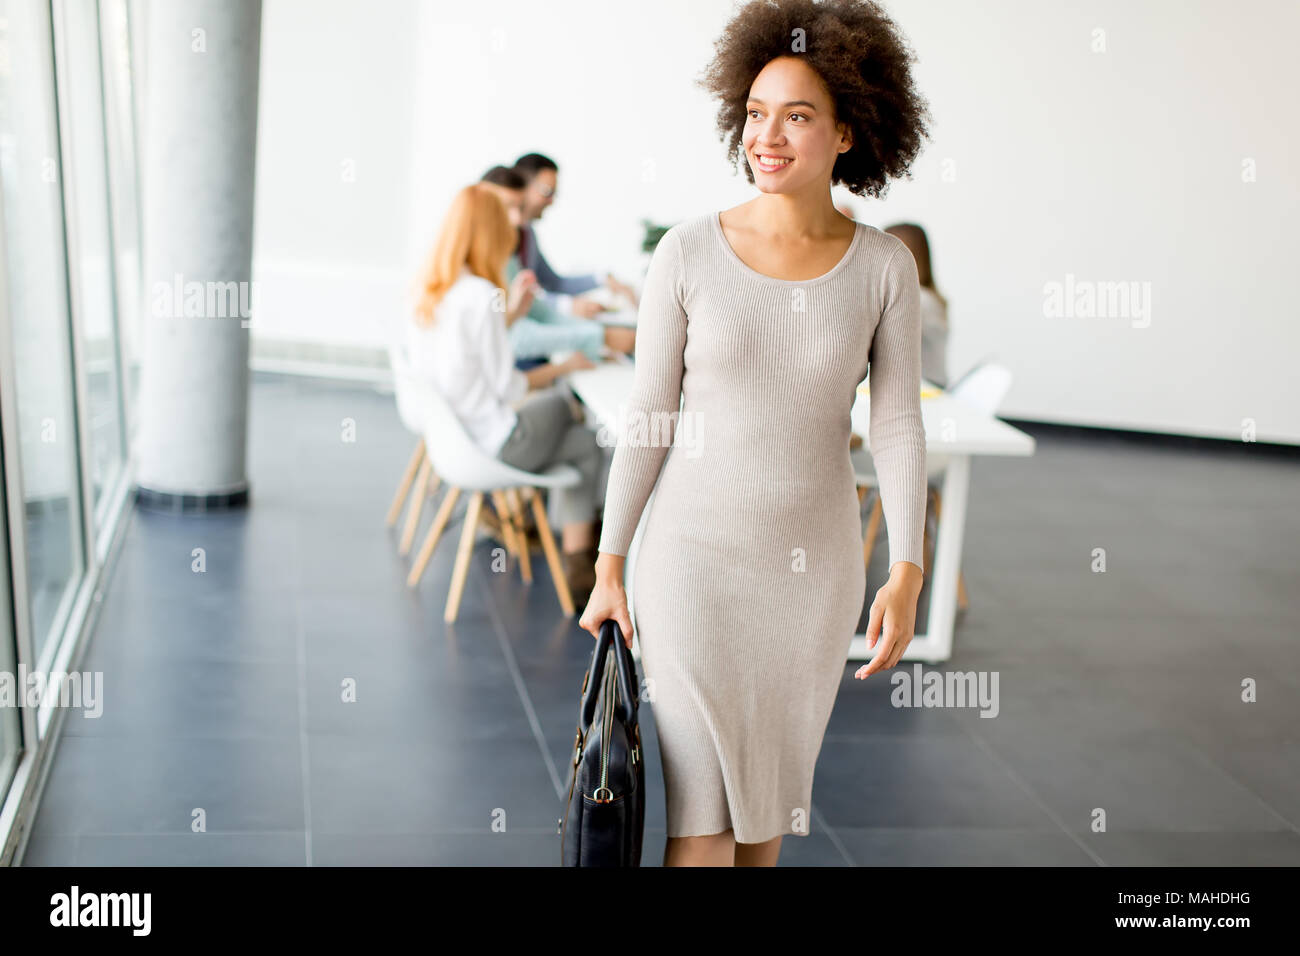 View at business people discussing a strategy and working together in office while young businesswoman leaving office - Stock Image